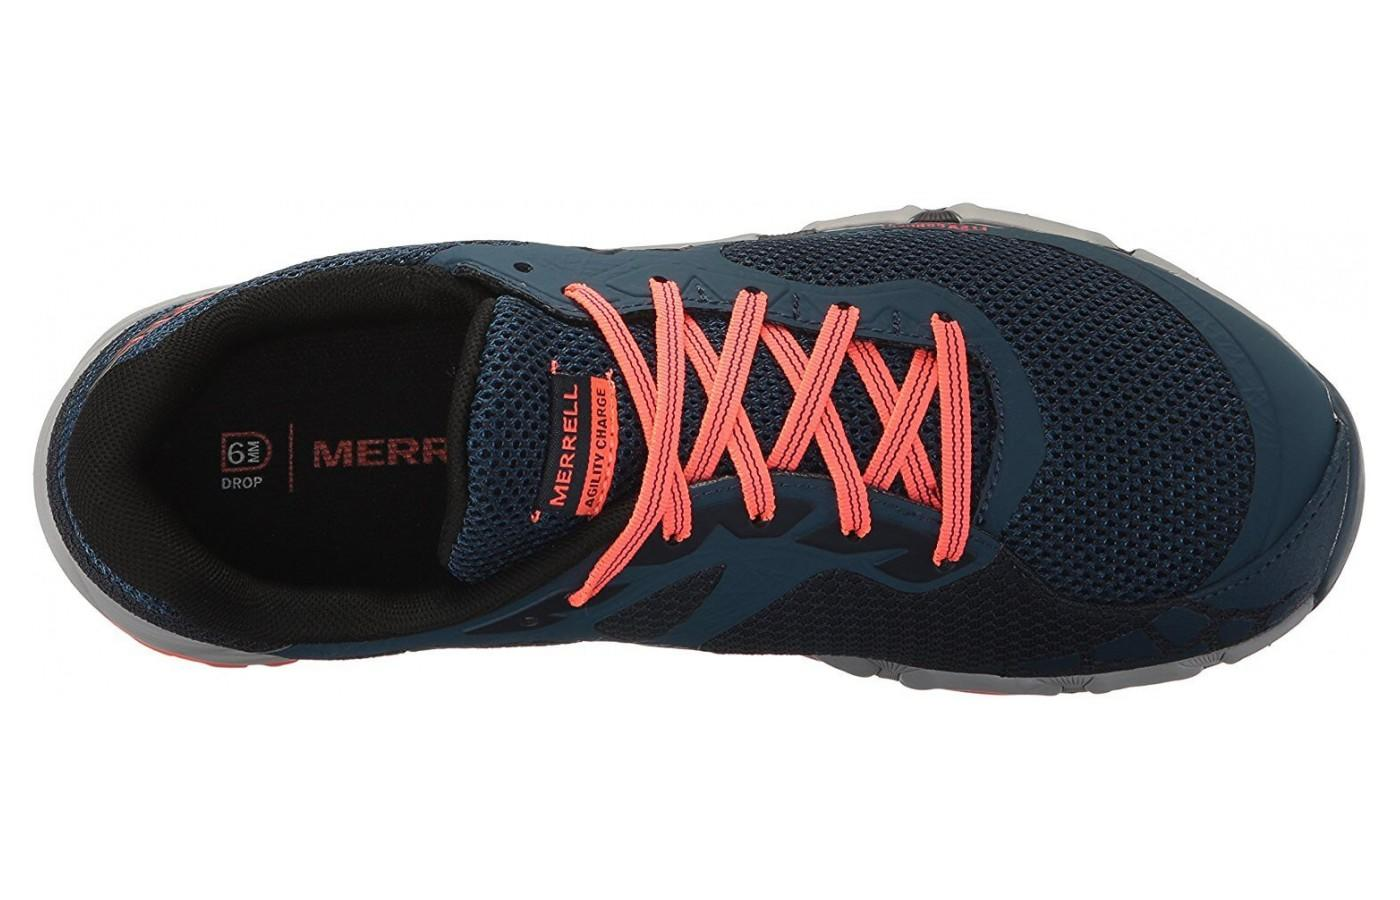 Merrell Agility Charge Flex features standard lacing system